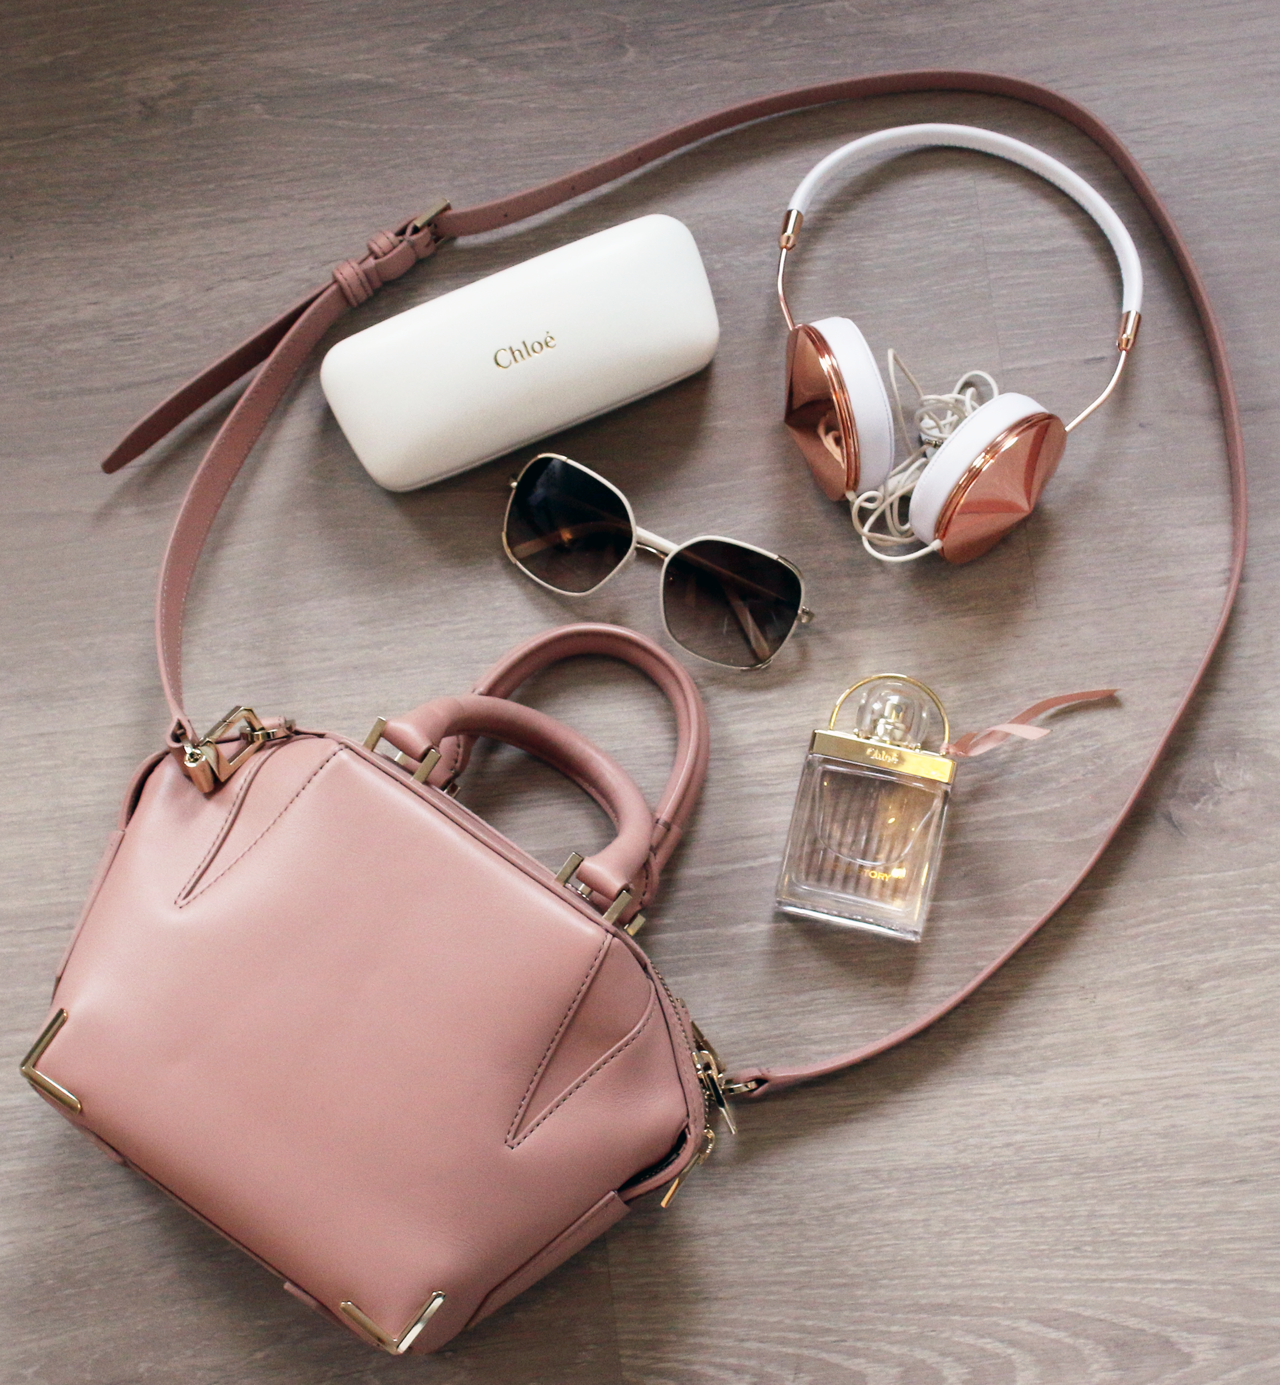 NEW IN | Alexander Wang Mini Emile in Blush Designer Bag | Video